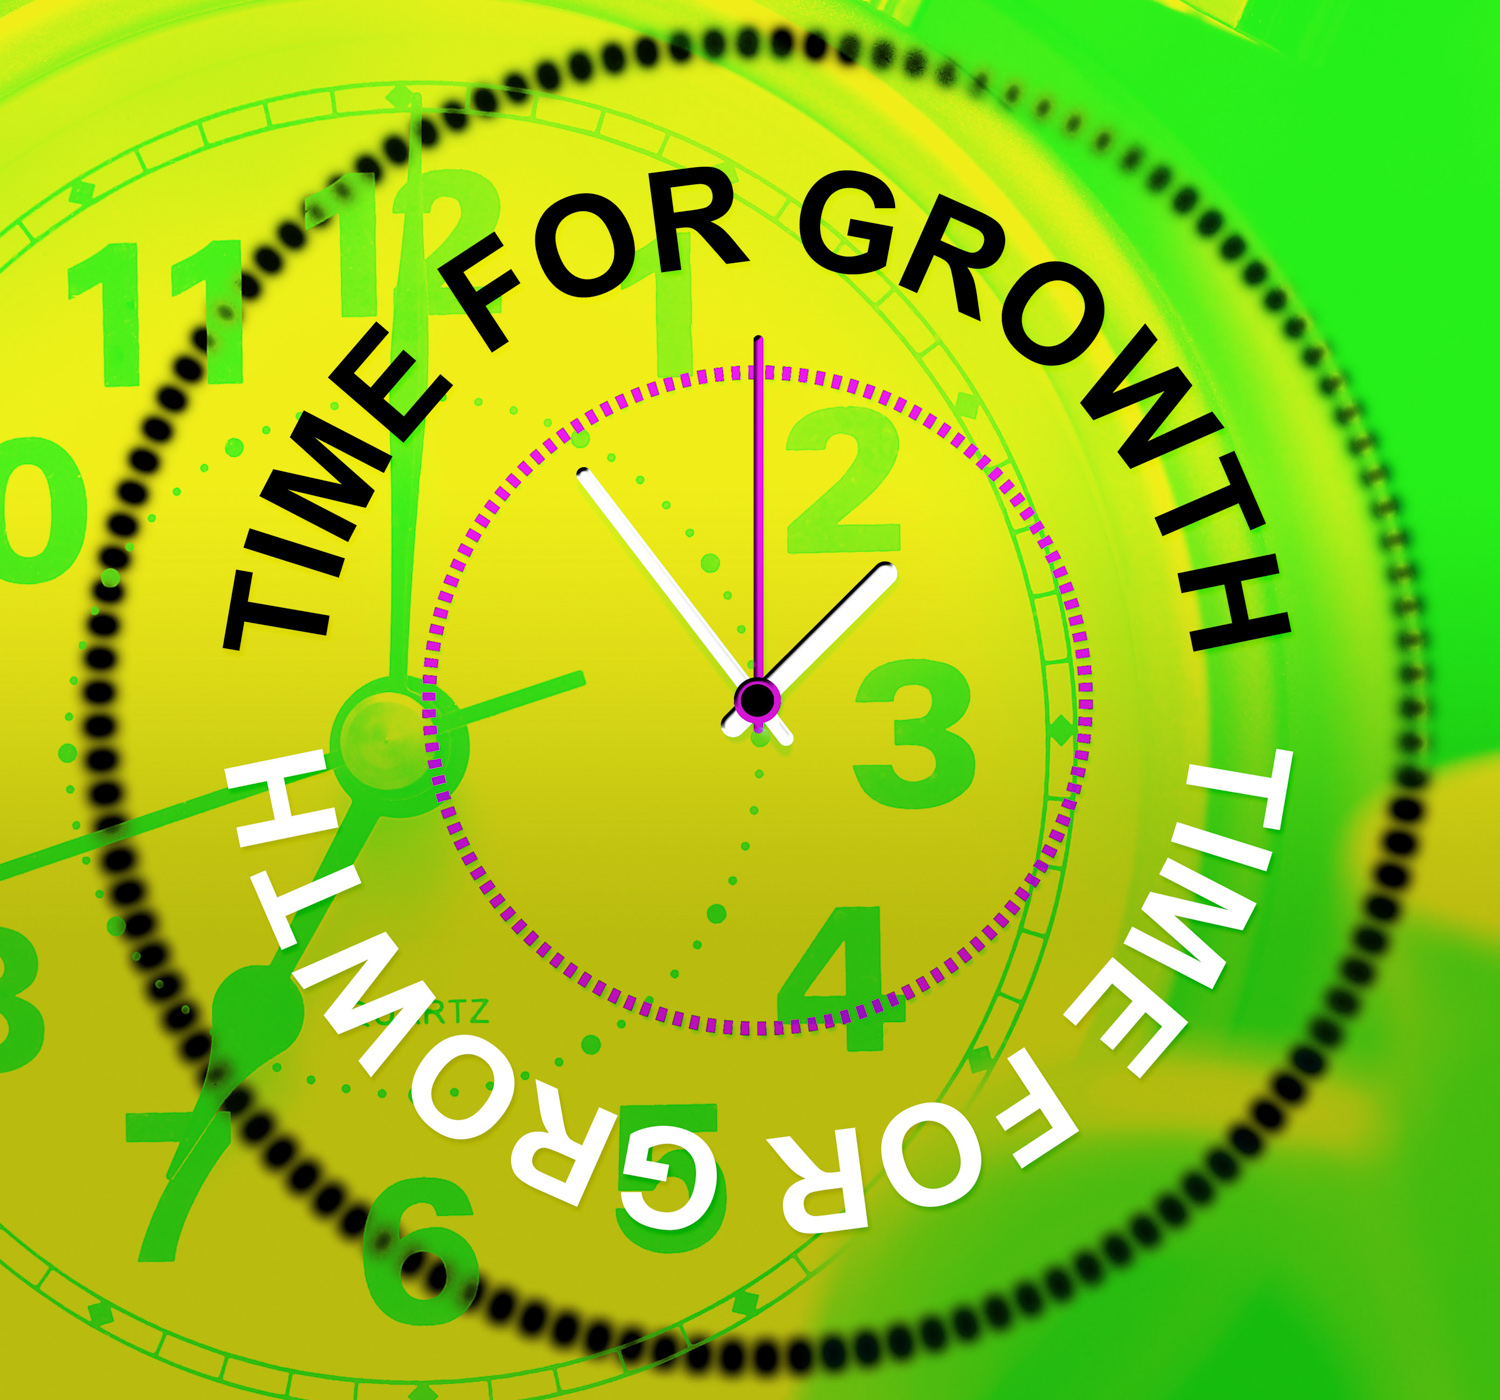 Time for growth represents development improve and rise photo